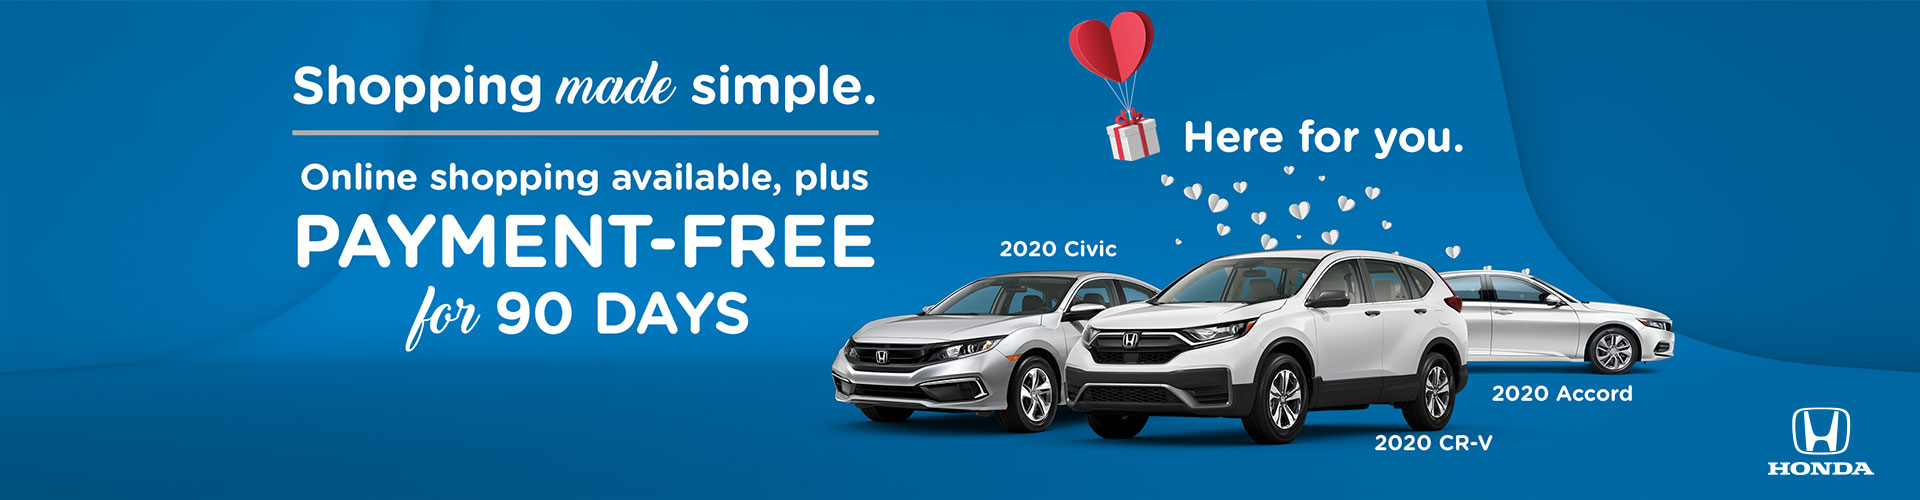 Worry Free Savings - Payment Free for 90 days on all new Hondas